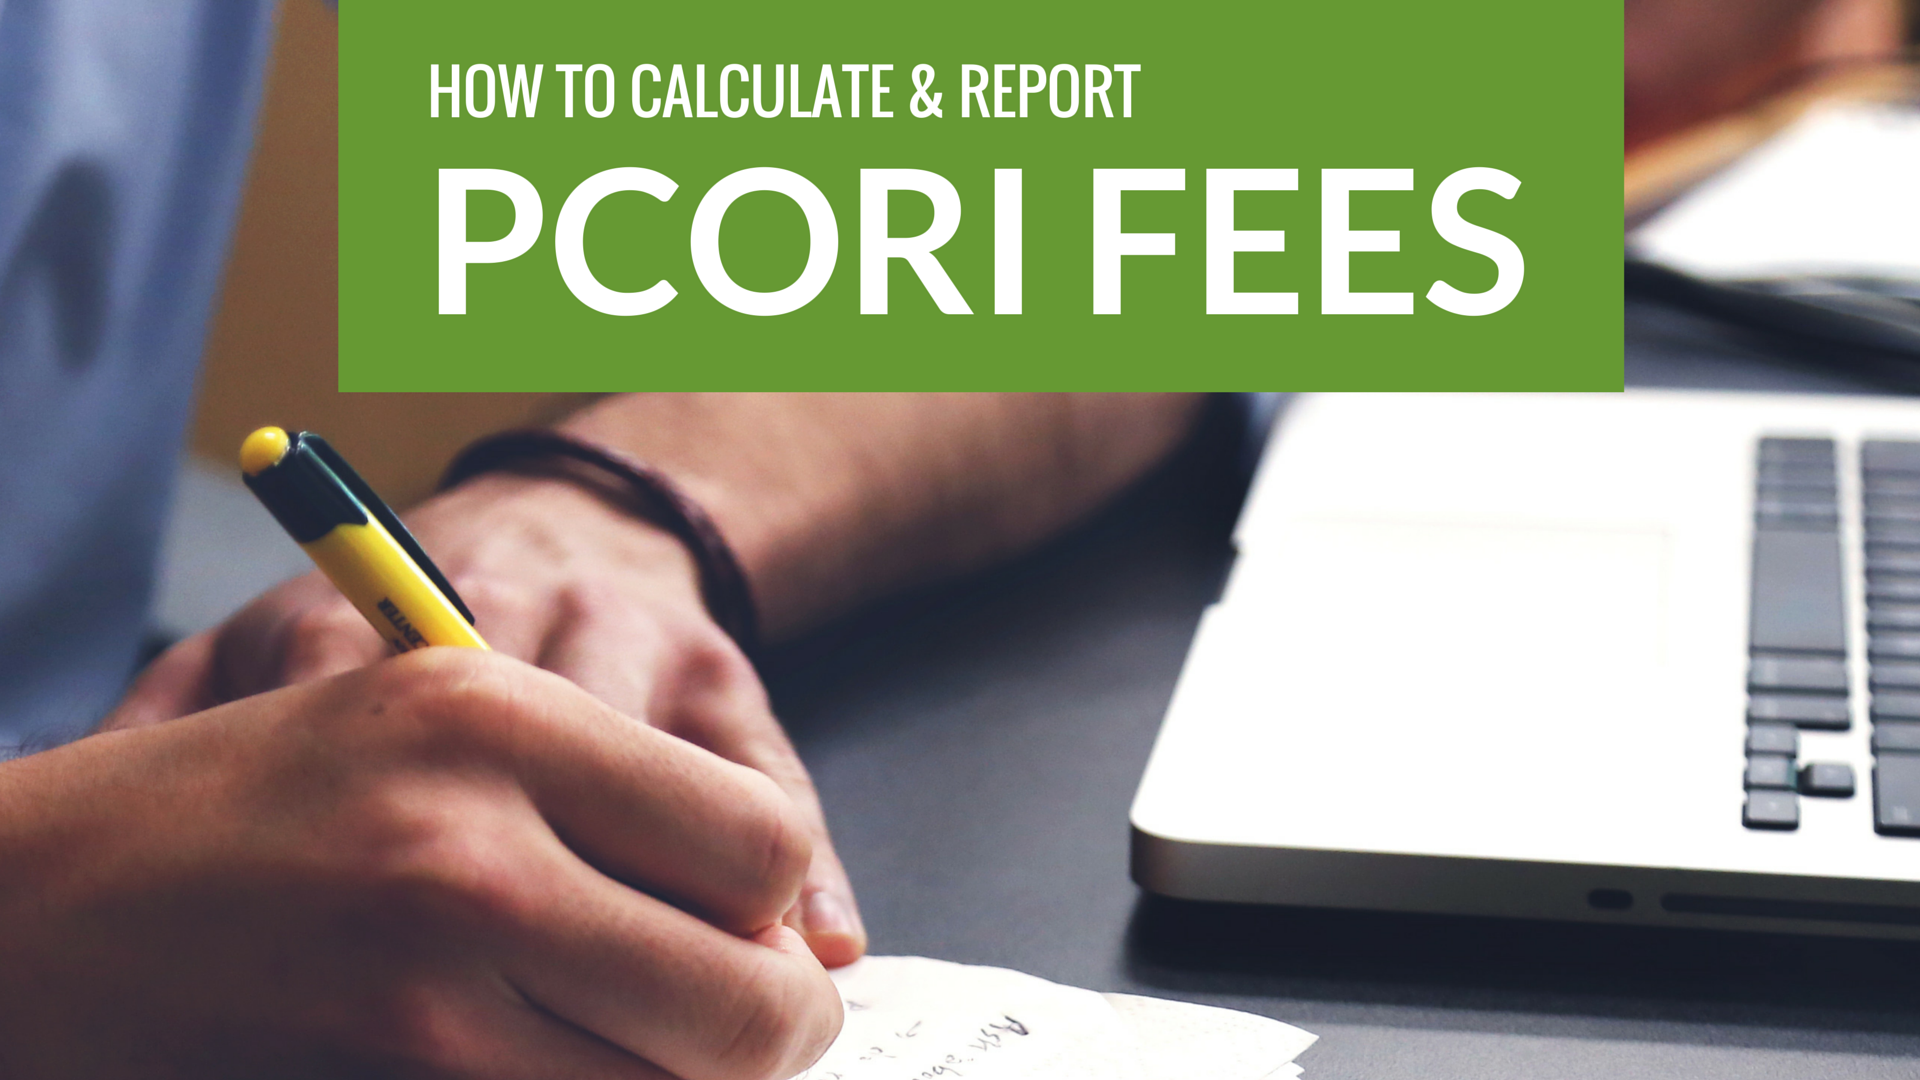 Calculating and Reporting PCORI Fees